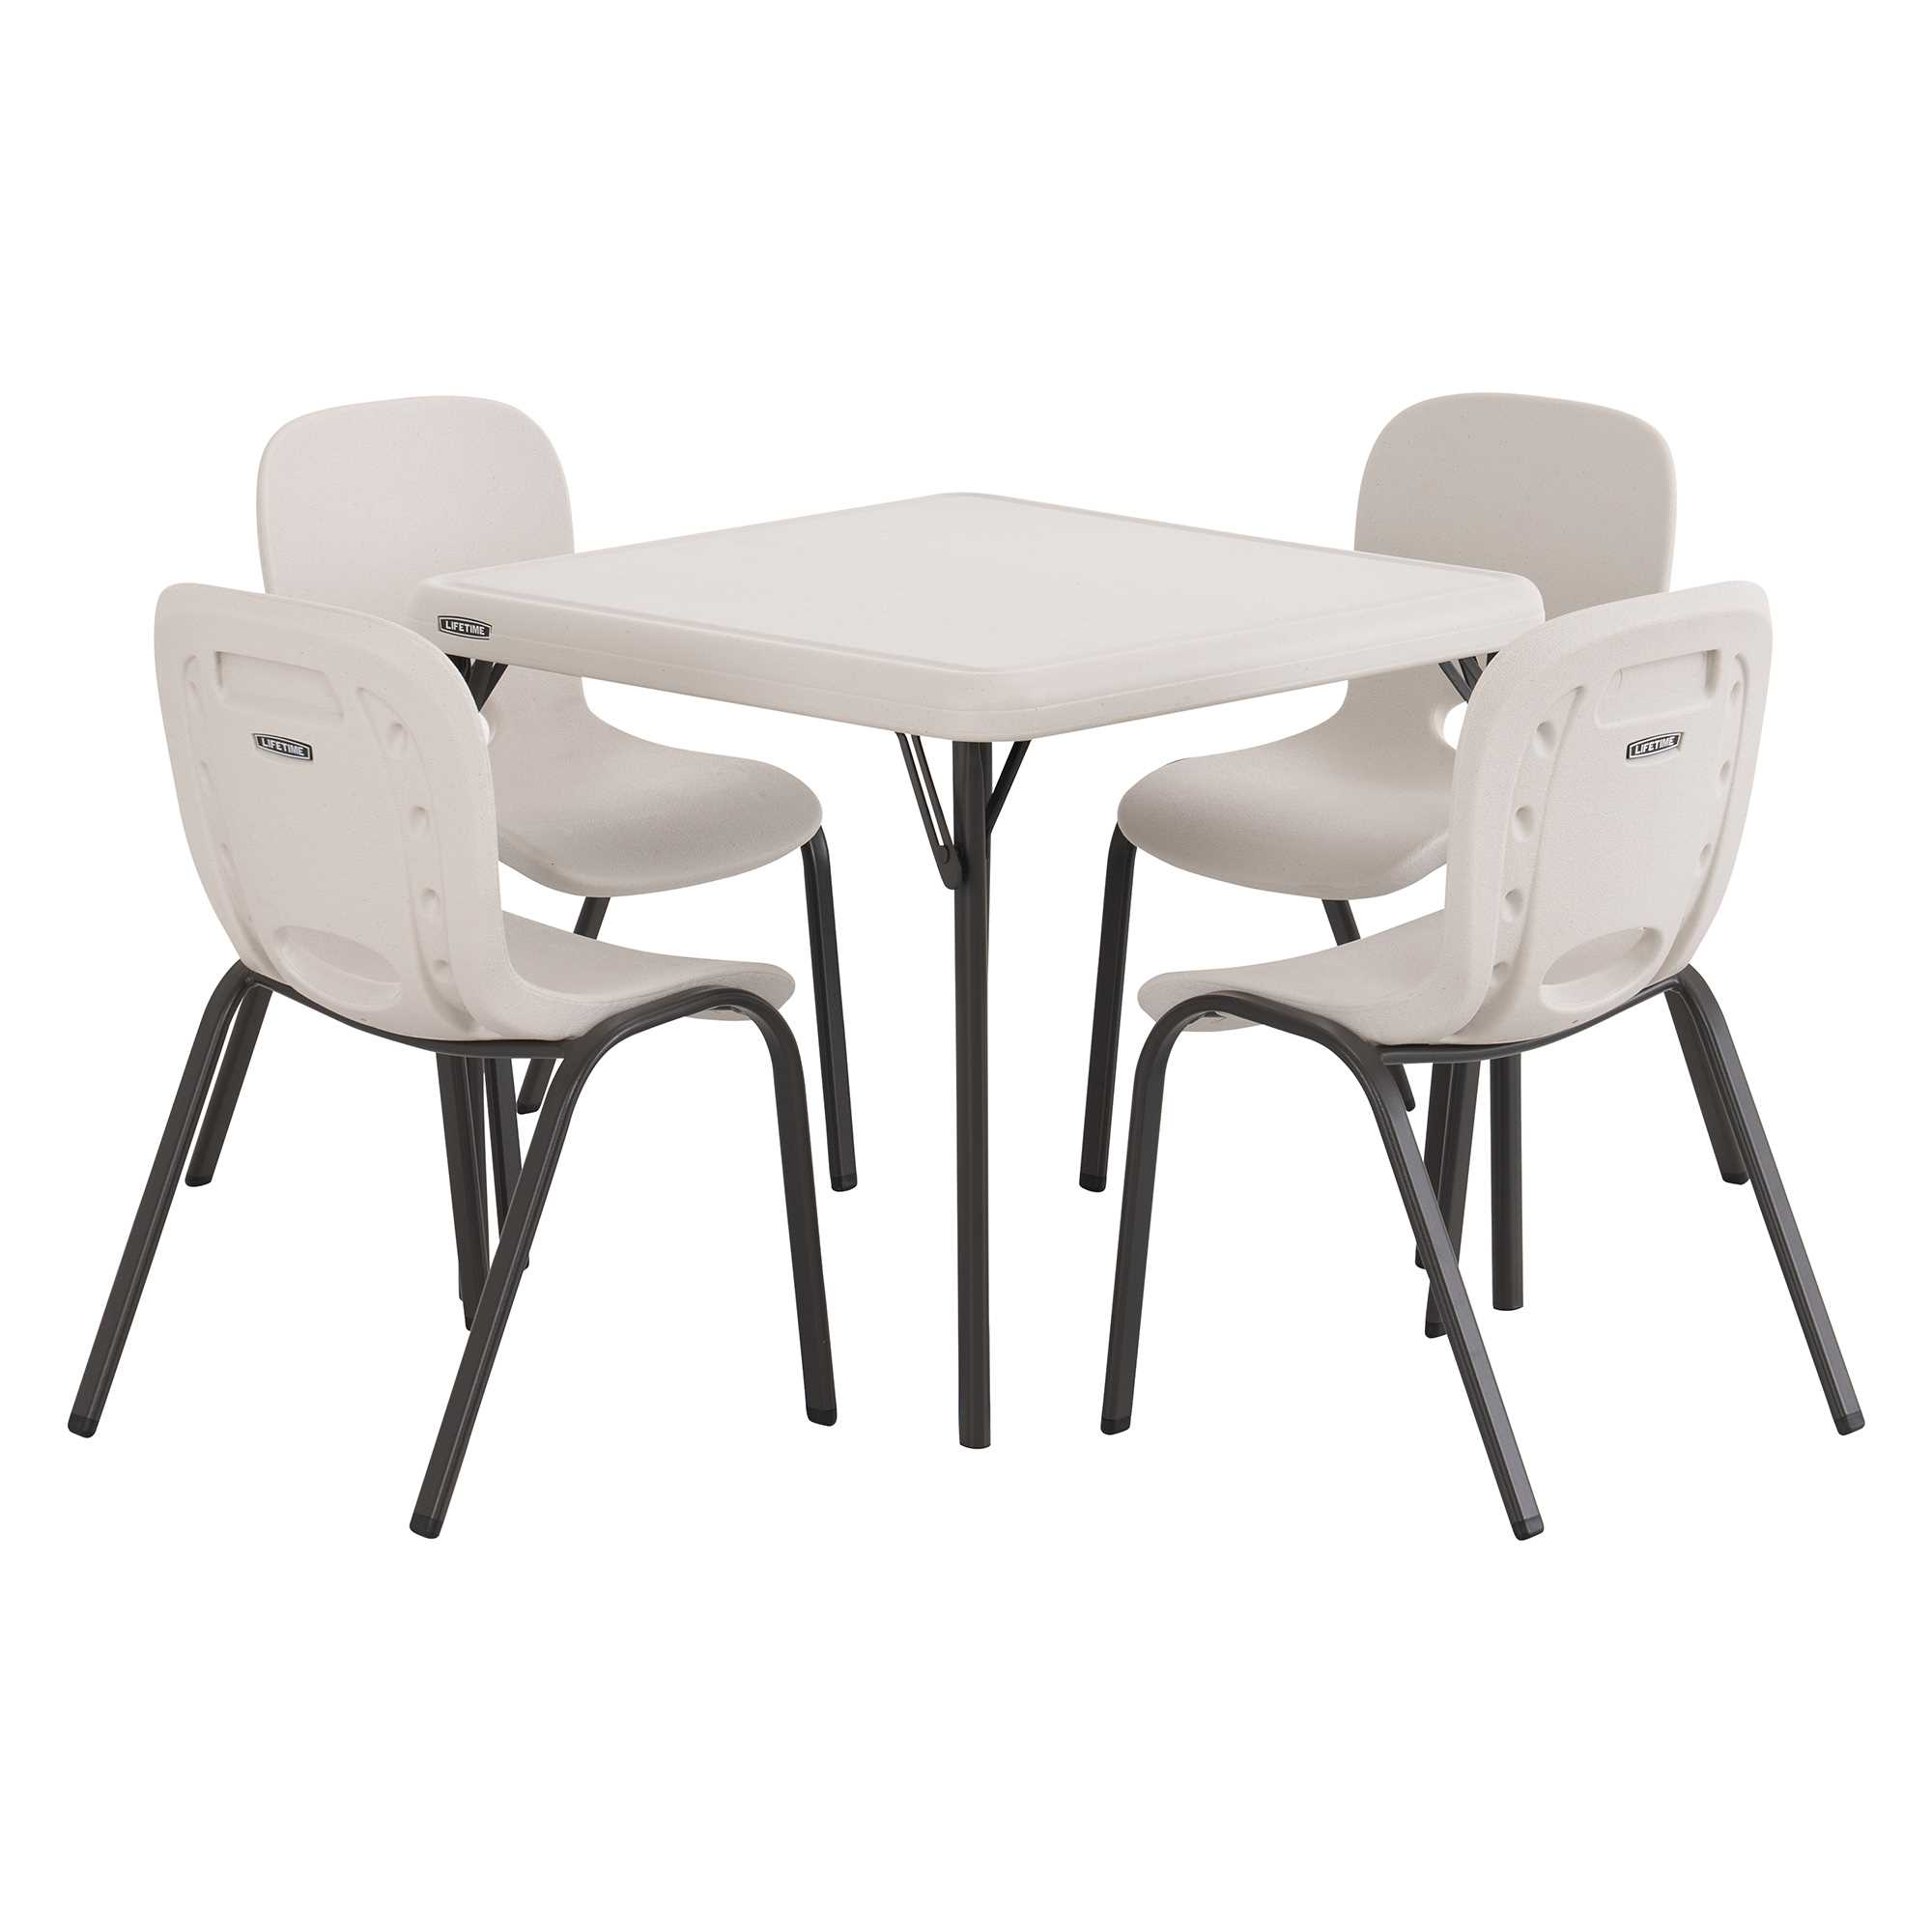 Lifetime Childrens Table and (4) Chairs Combo (Light Commercial)